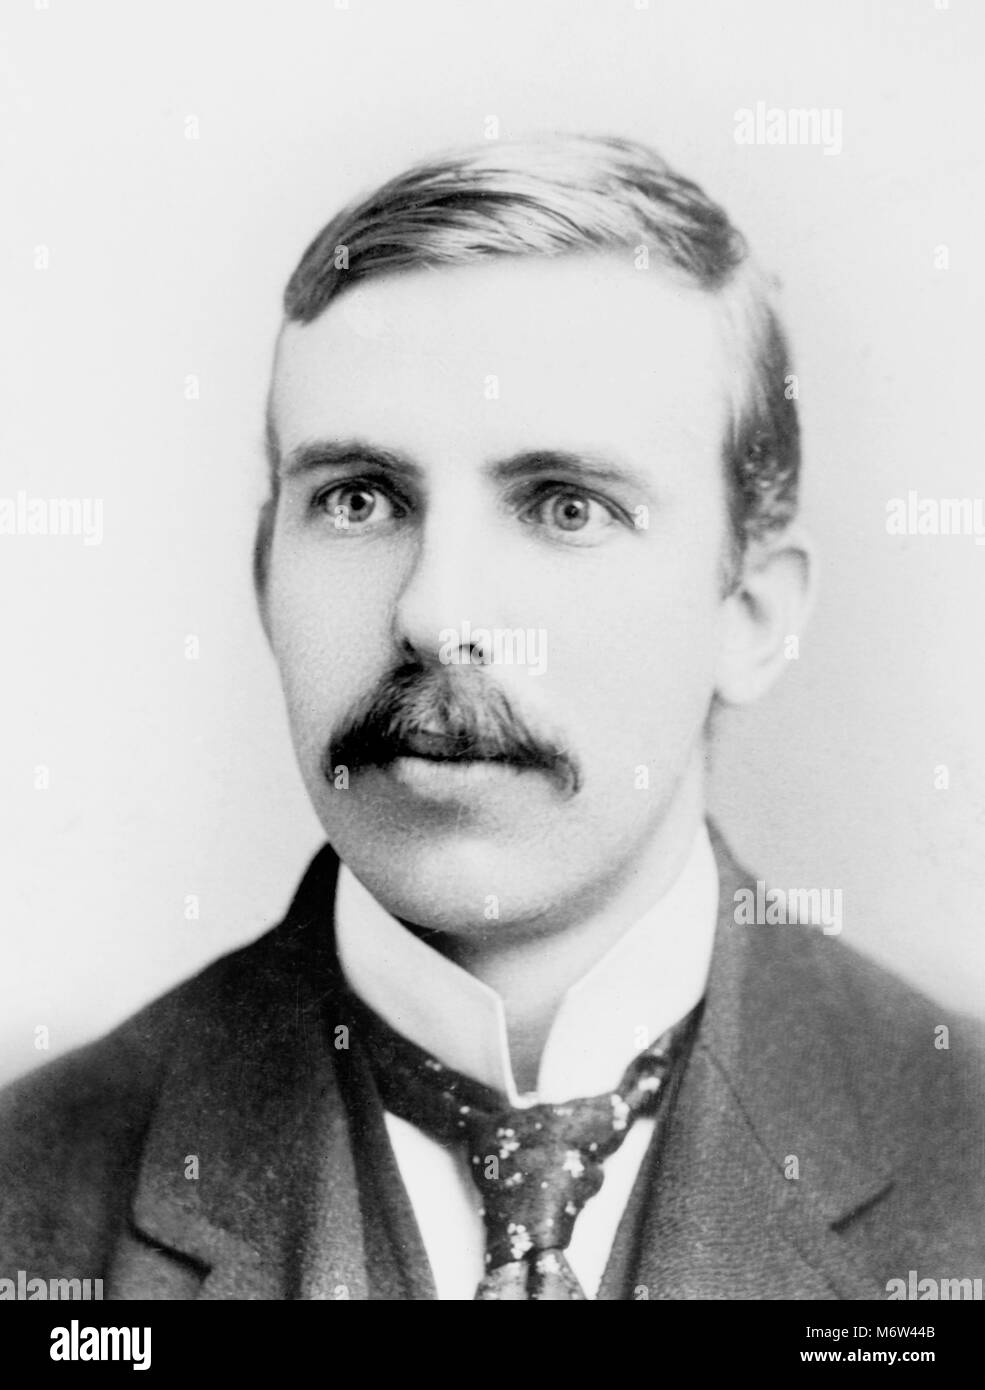 Sir Ernest Rutherford. Portrait of Ernest Rutherford, 1st Baron Rutherford of Nelson (1871-1937). Photograph from - Stock Image